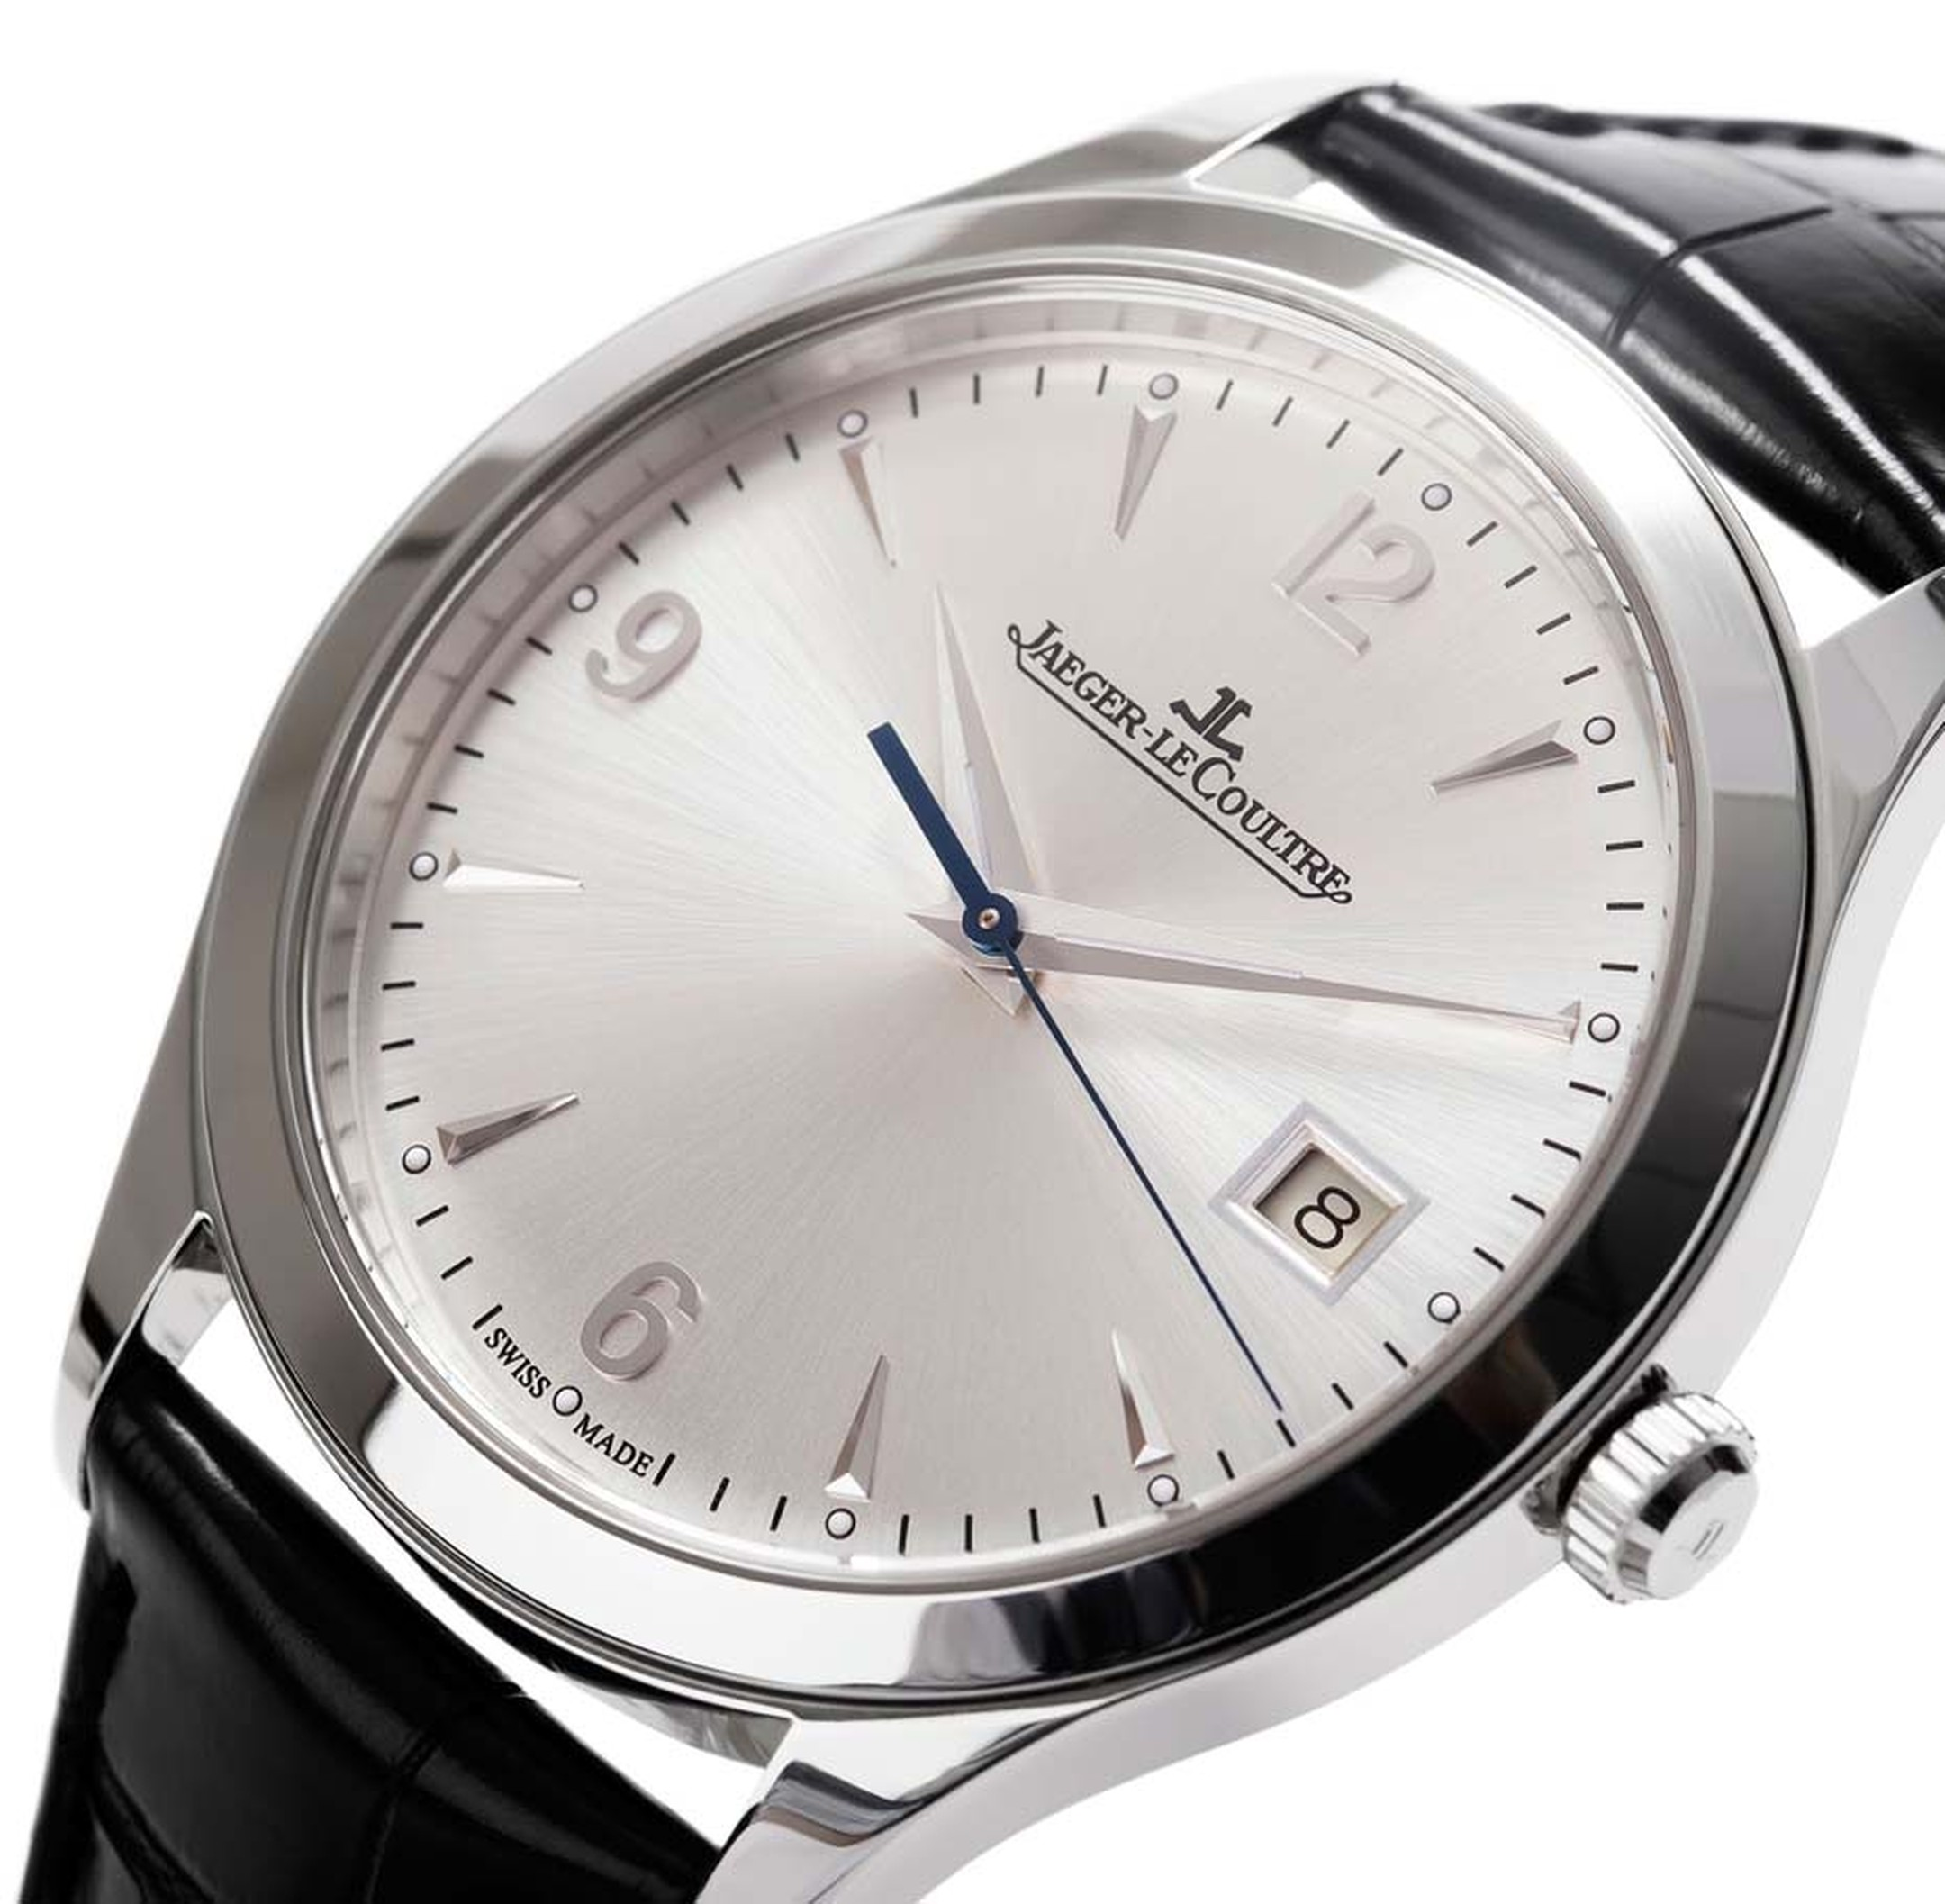 Jaeger-LeCoultre Master Control watch features pure lines and a sober dial, which includes a date window at 3 o'clock (£4,900).